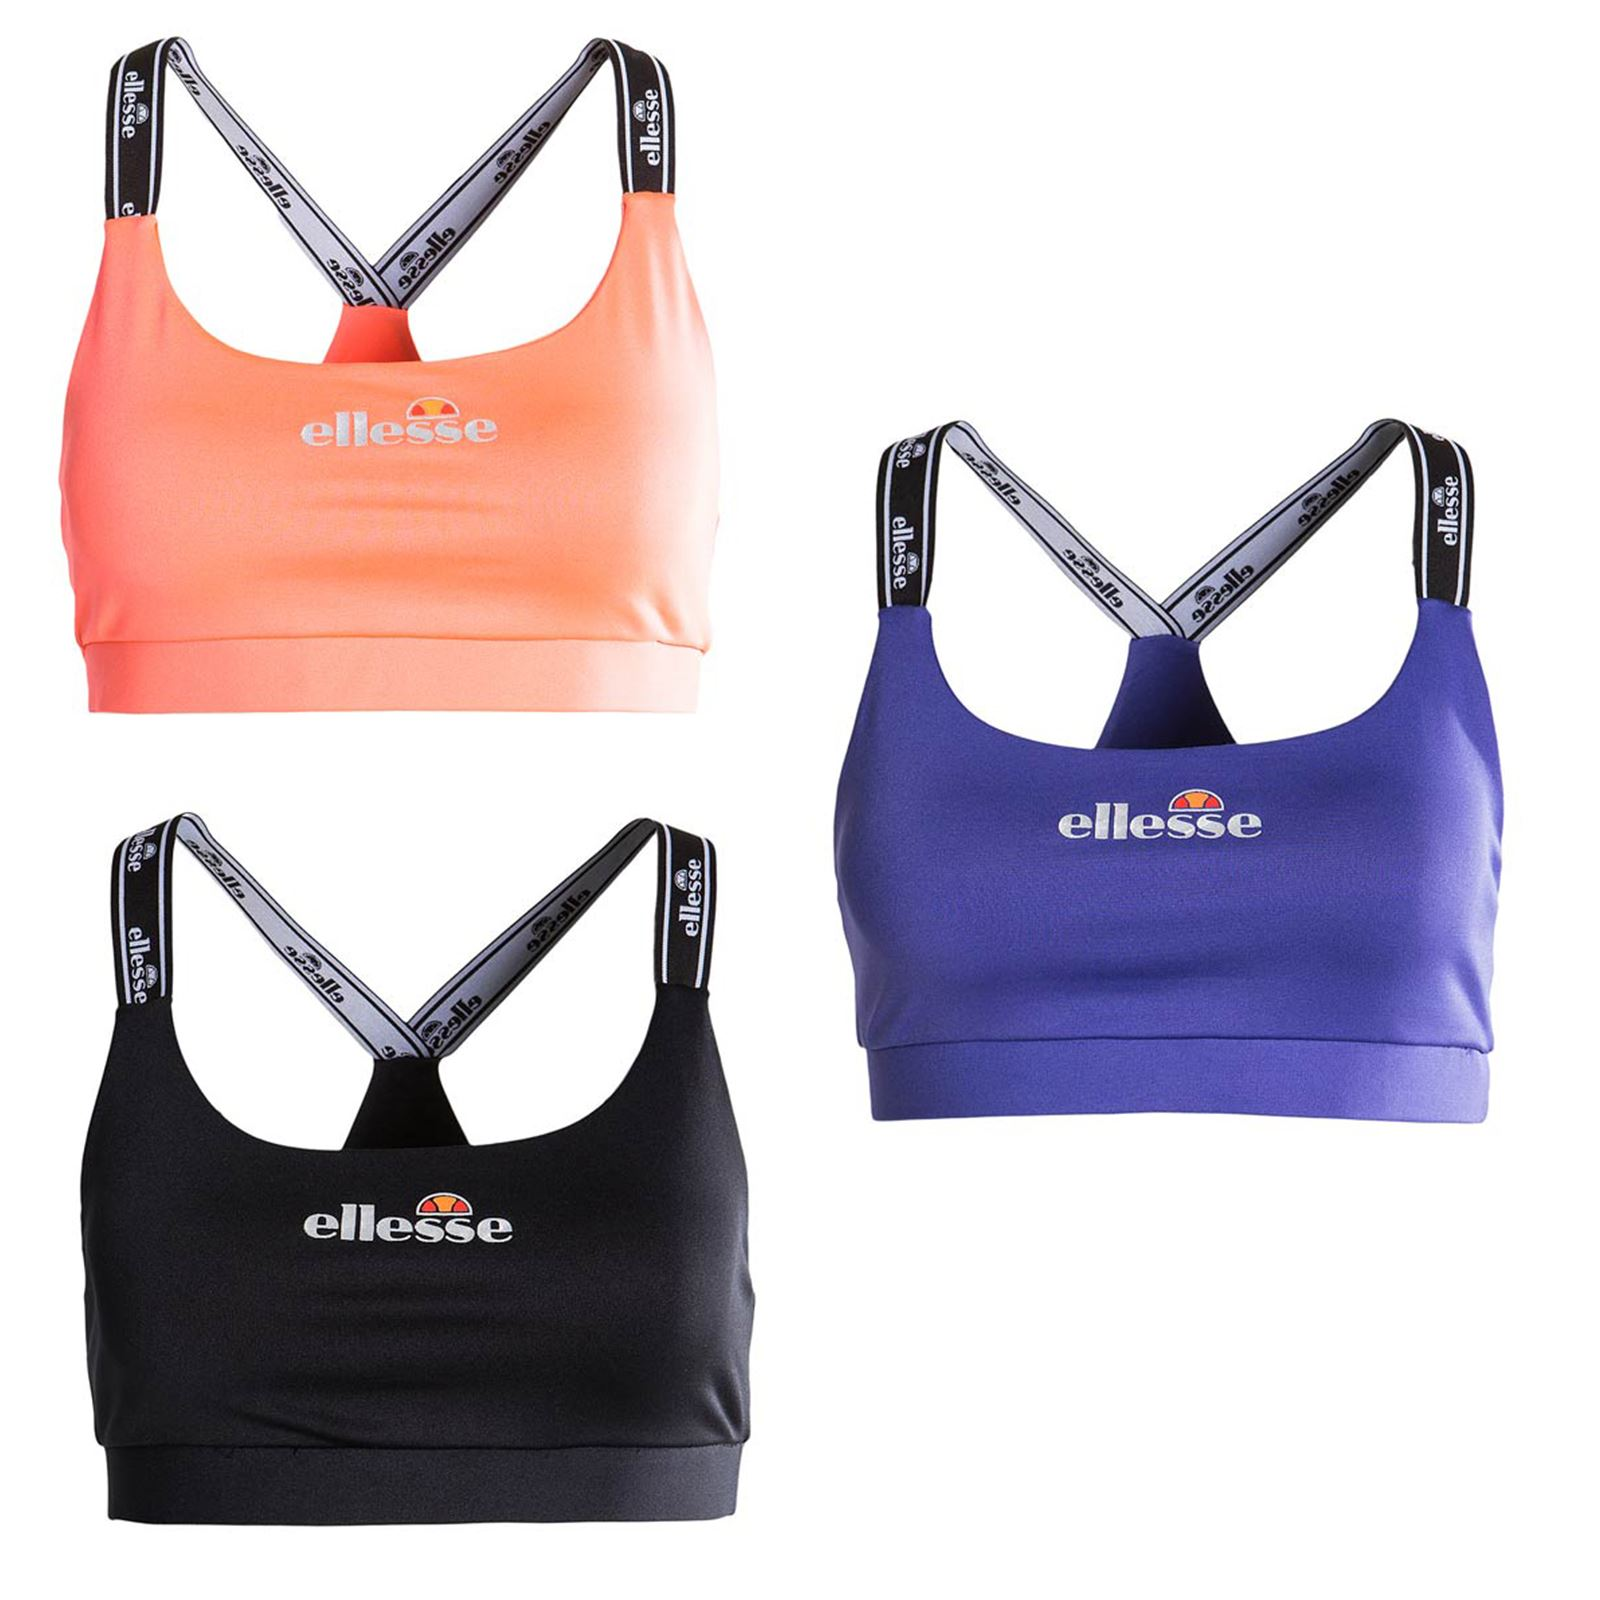 edb5abbe1f Details about Ellesse Juno Bra Top in Anthracite